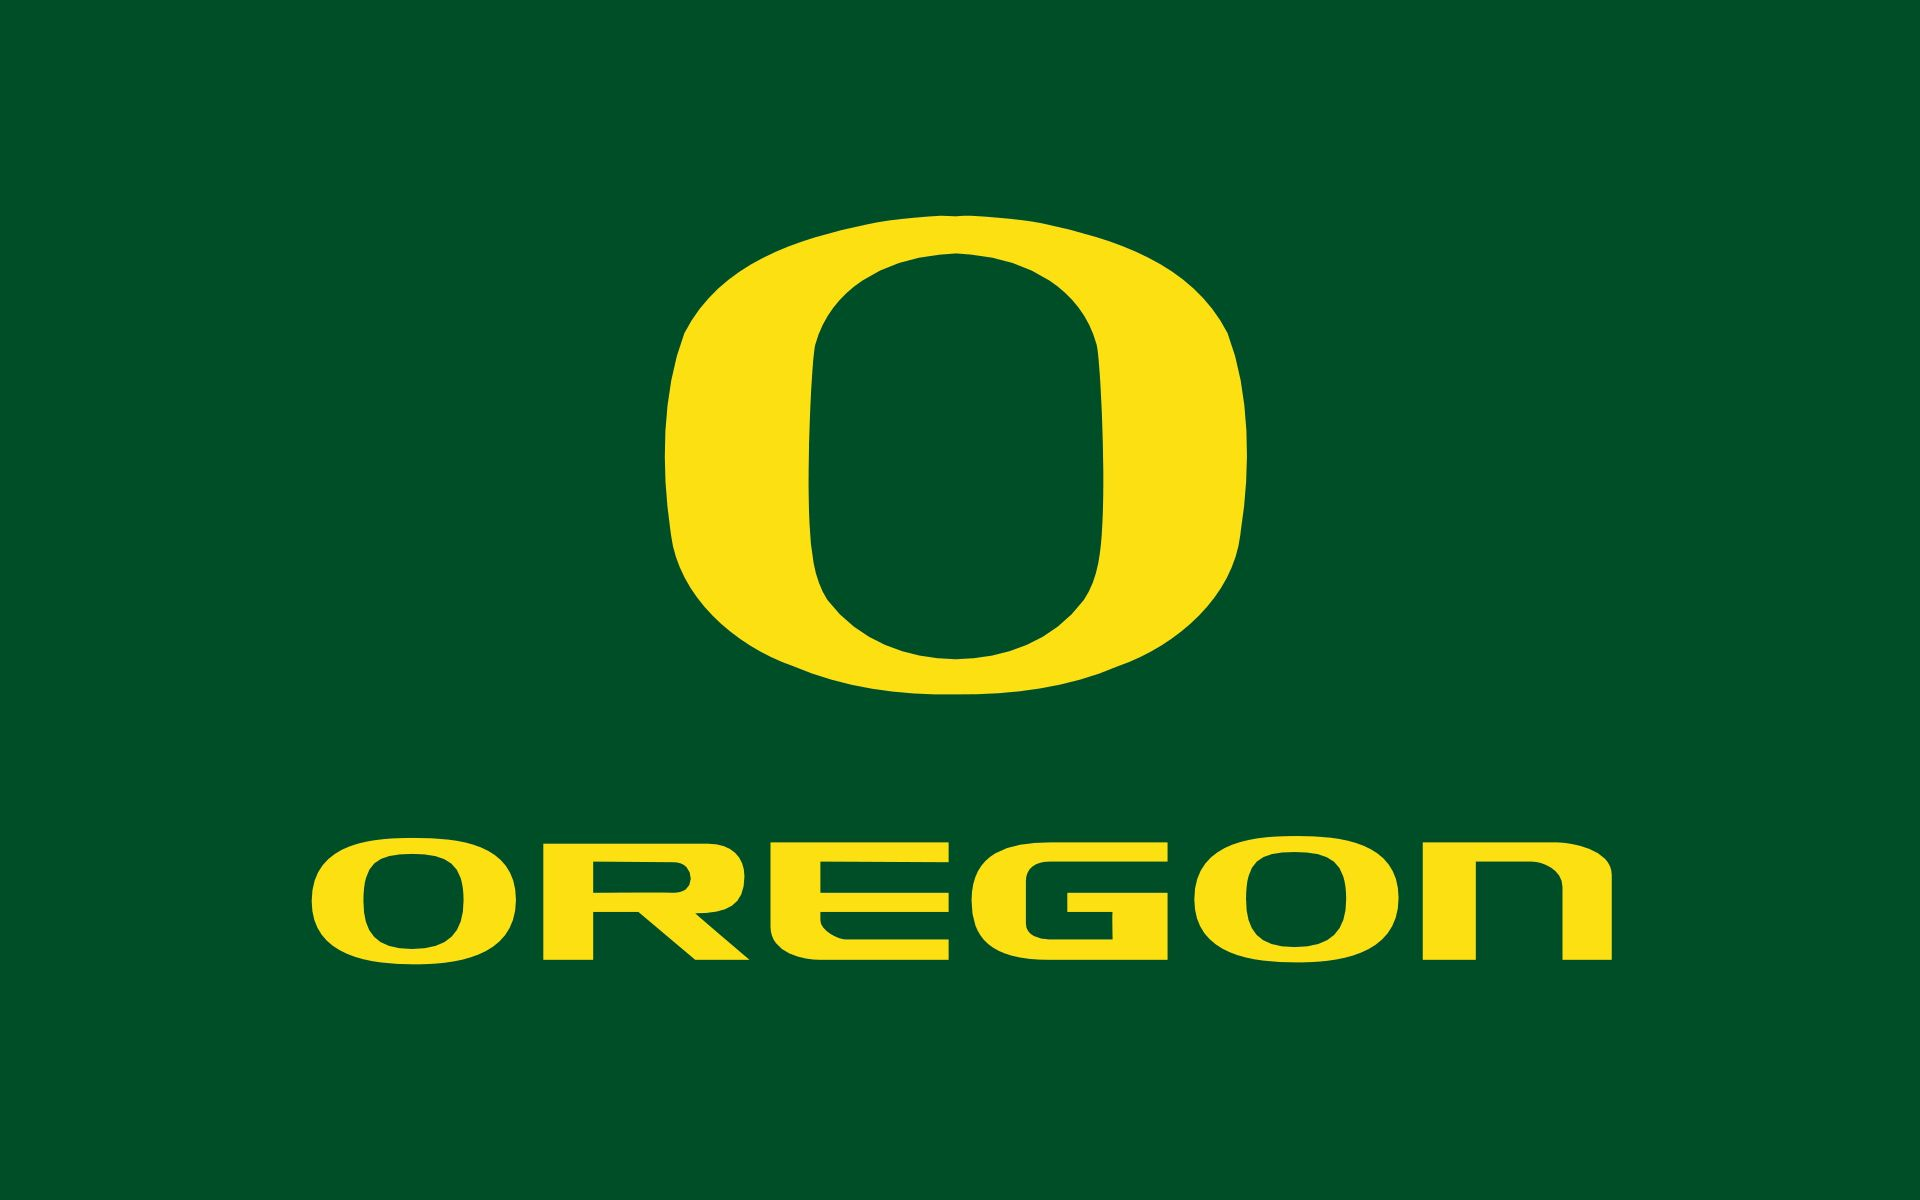 Oregon Ducks Wallpaper Desktop Wallpapers Pinterest